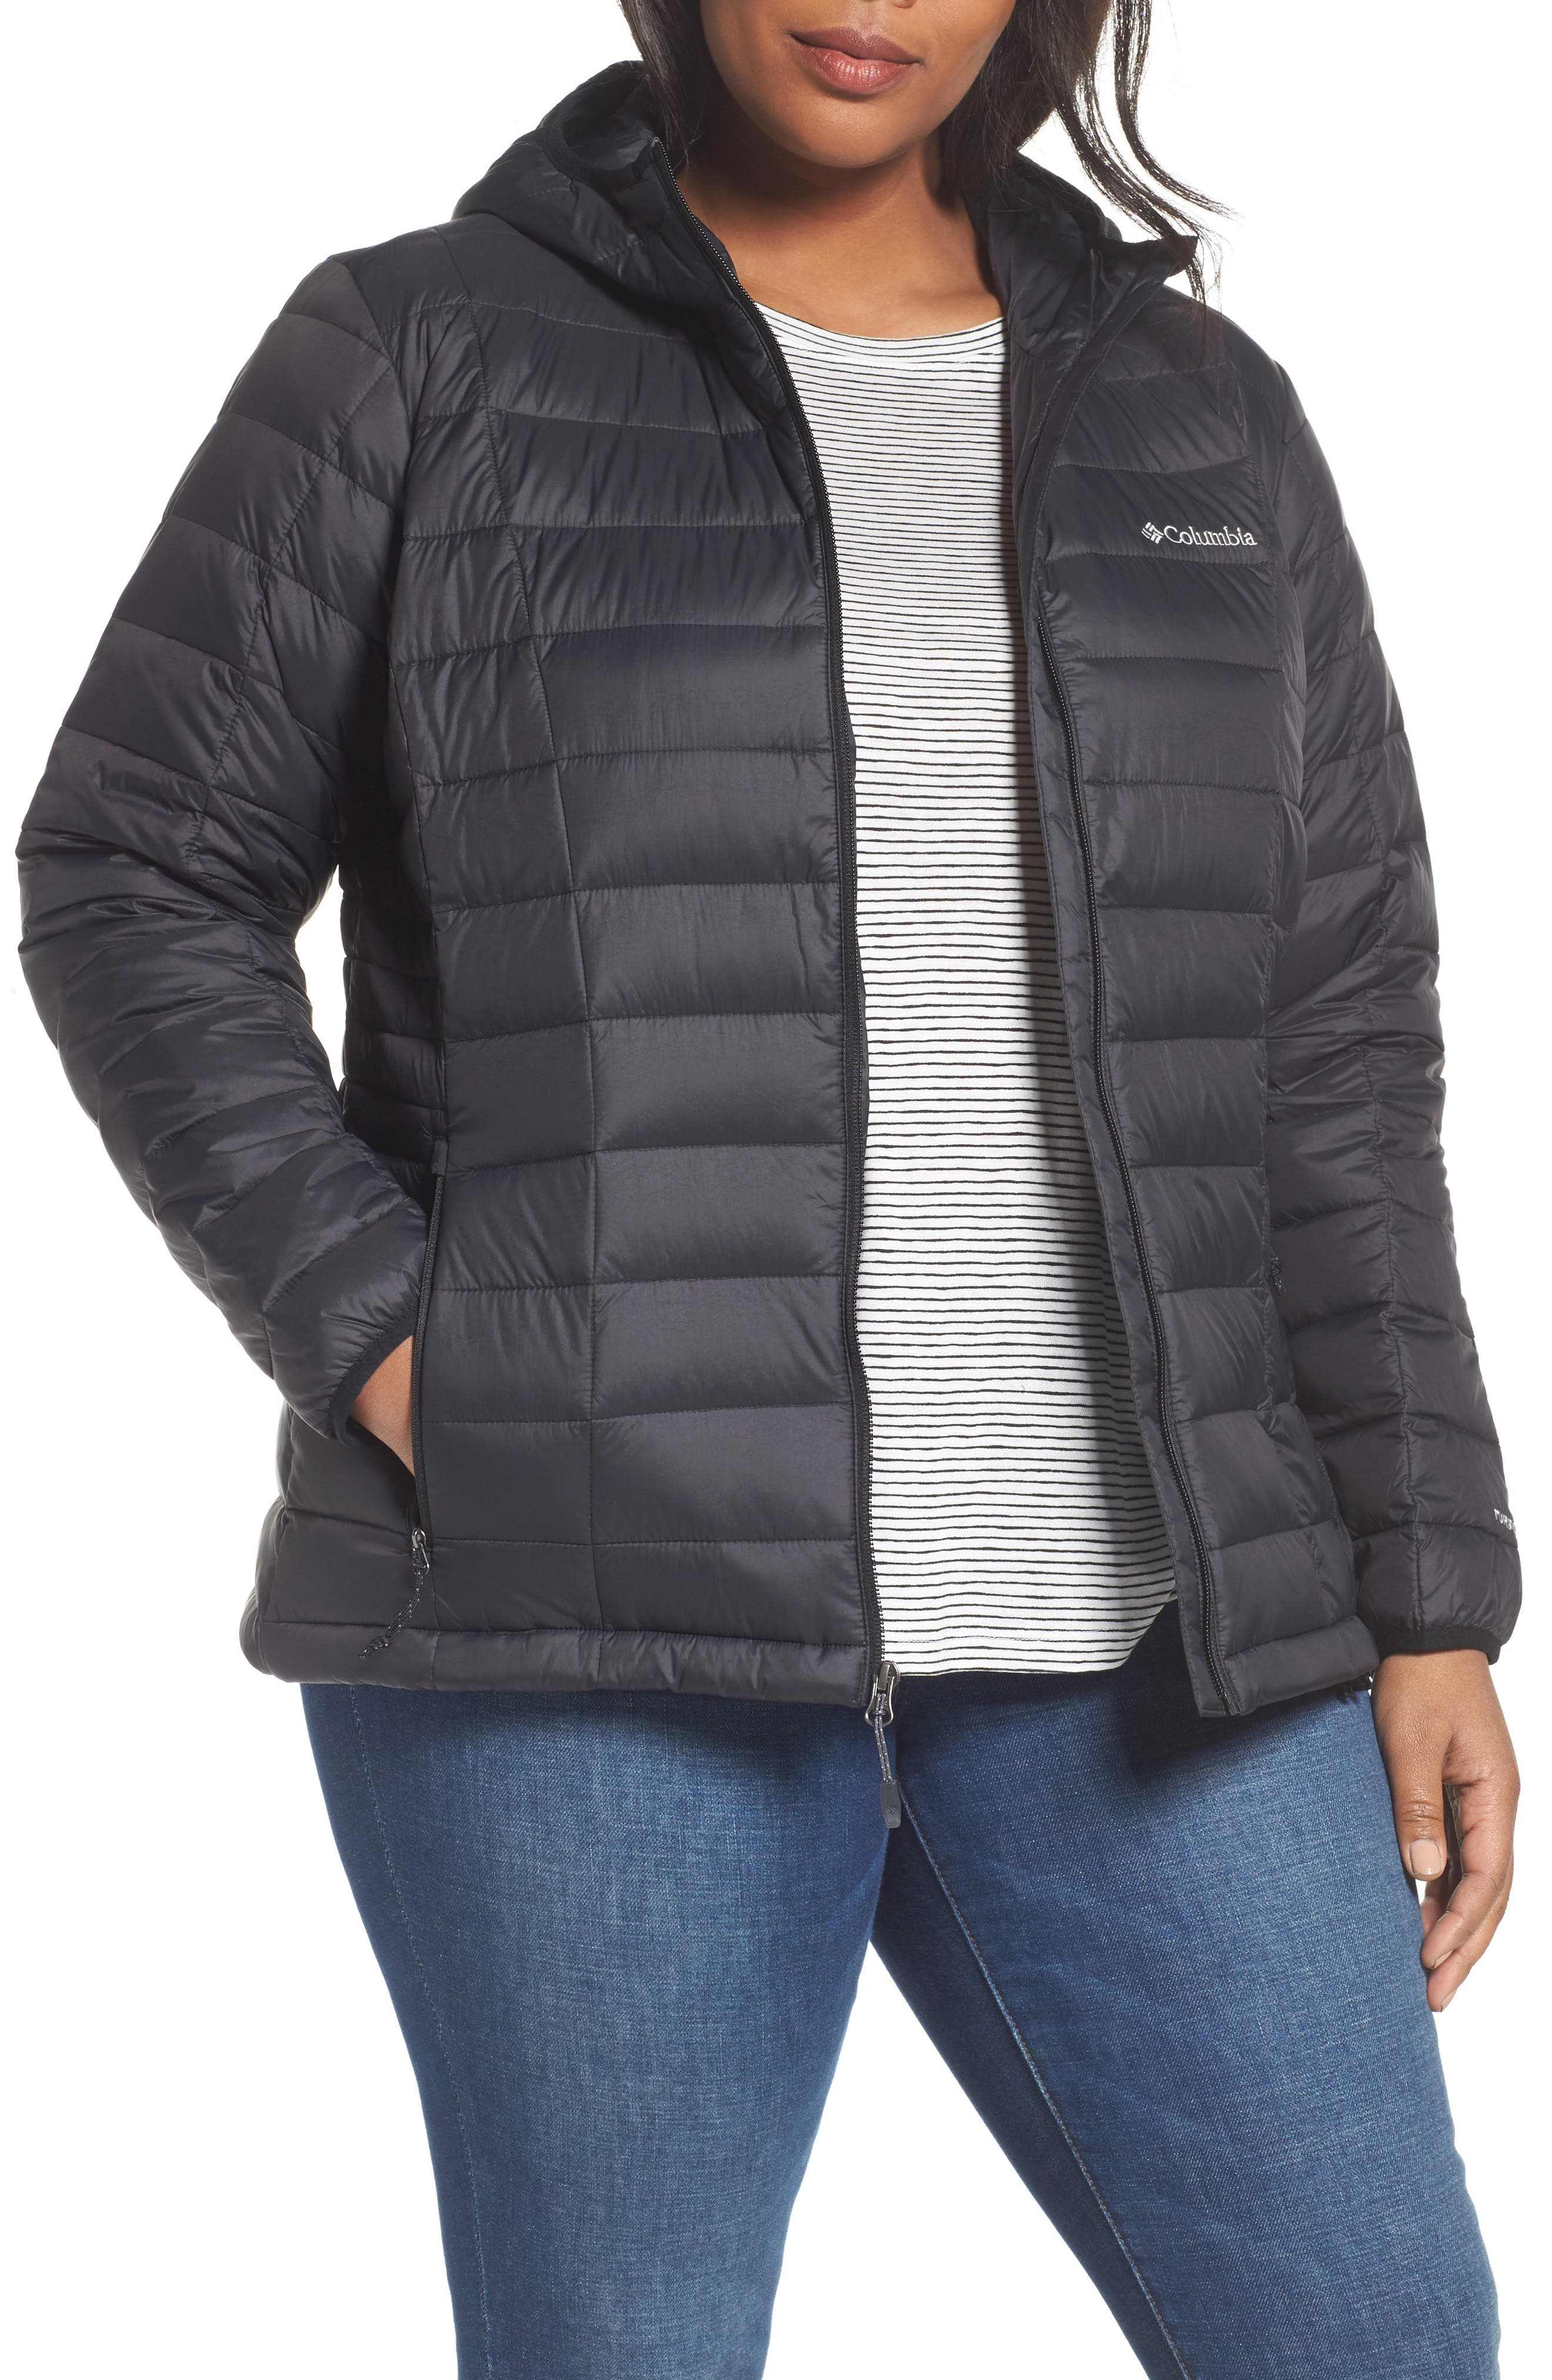 Alternate Image 1 Selected - Columbia Voodoo Falls 590 Turbodown™ Down Jacket (Plus Size)